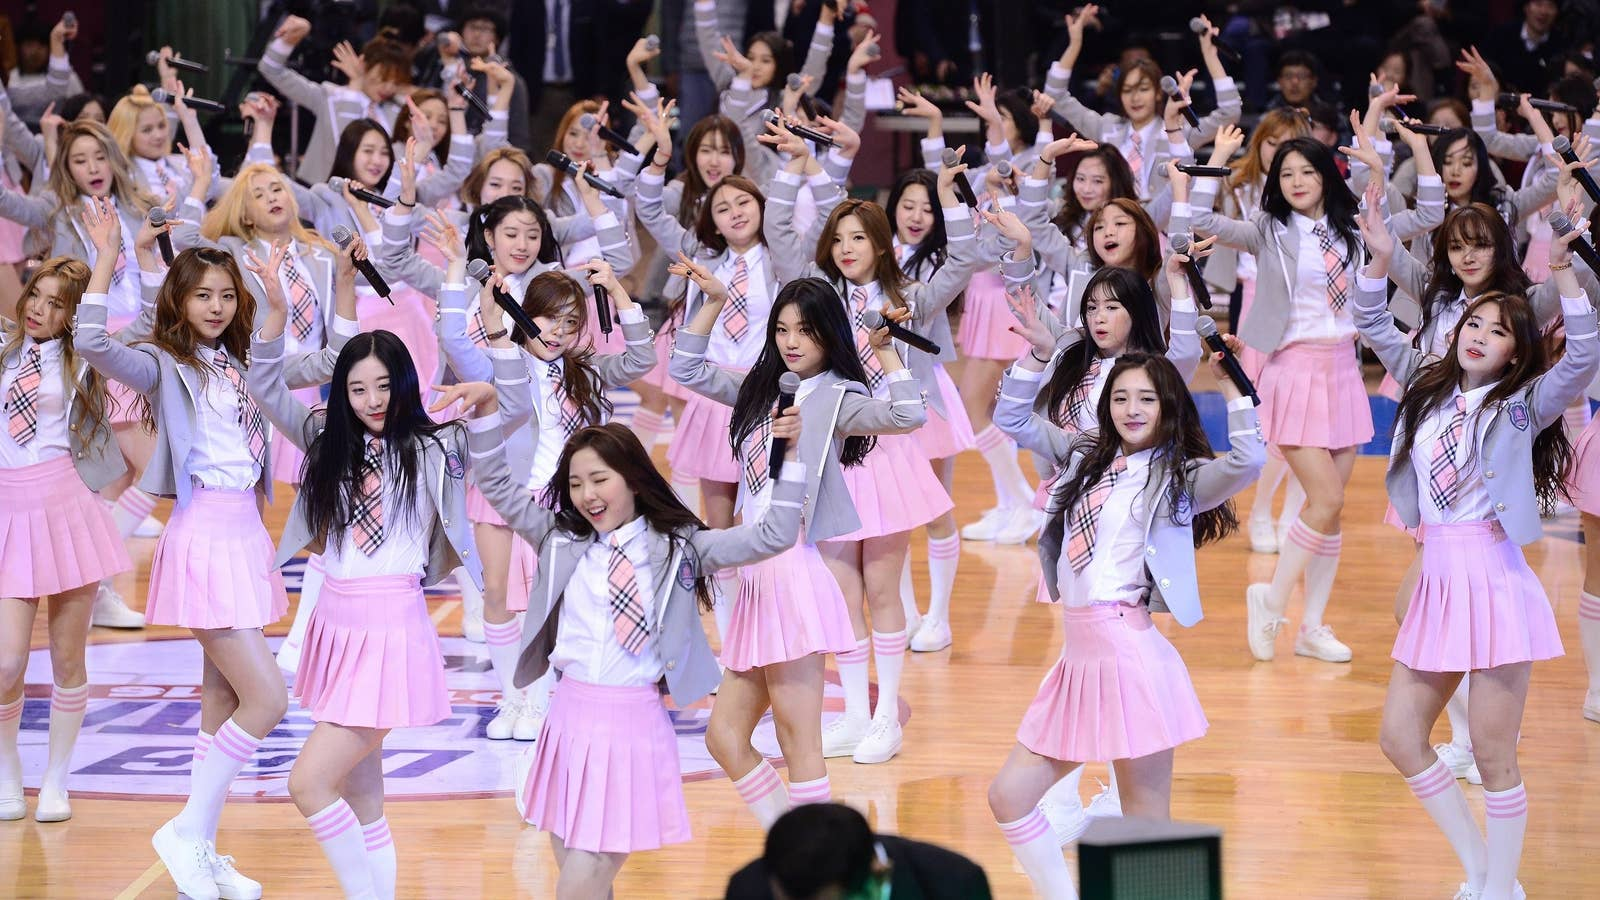 Dozens of K-pop girls wear skirts, ties, and blazers and pose for the camera while holding microphones